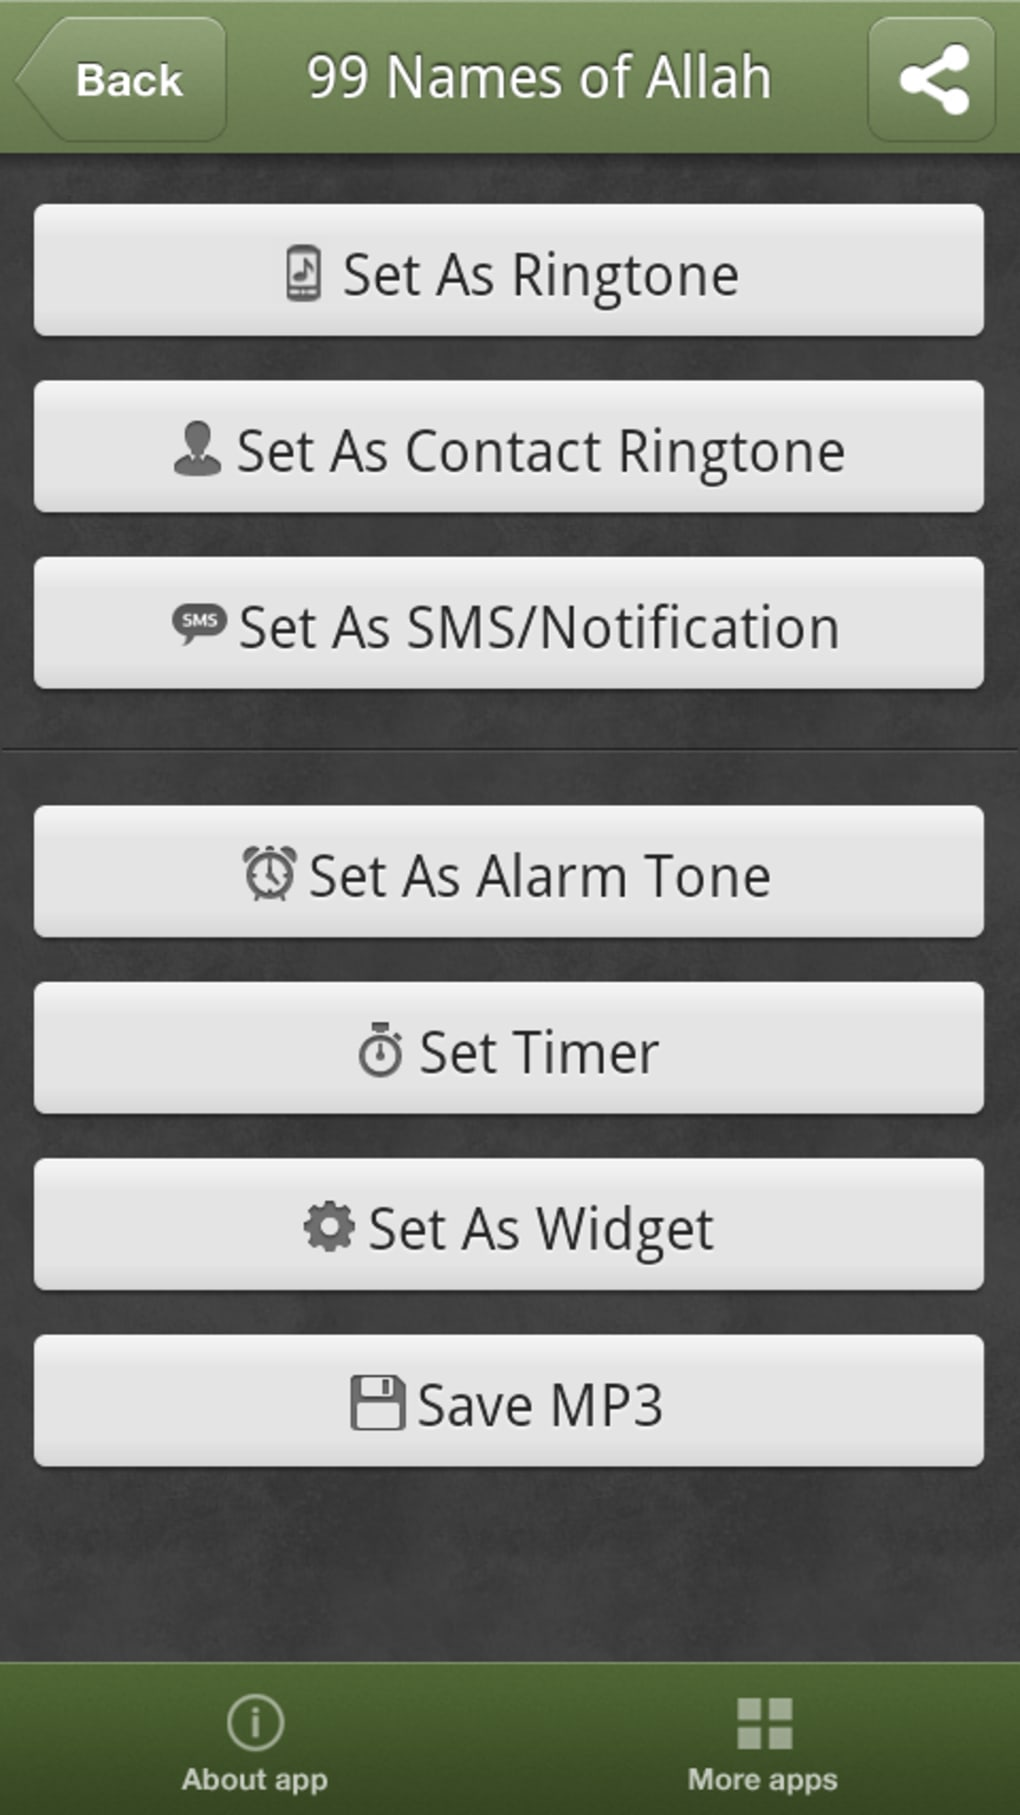 Islamic Ringtones for Android - Download